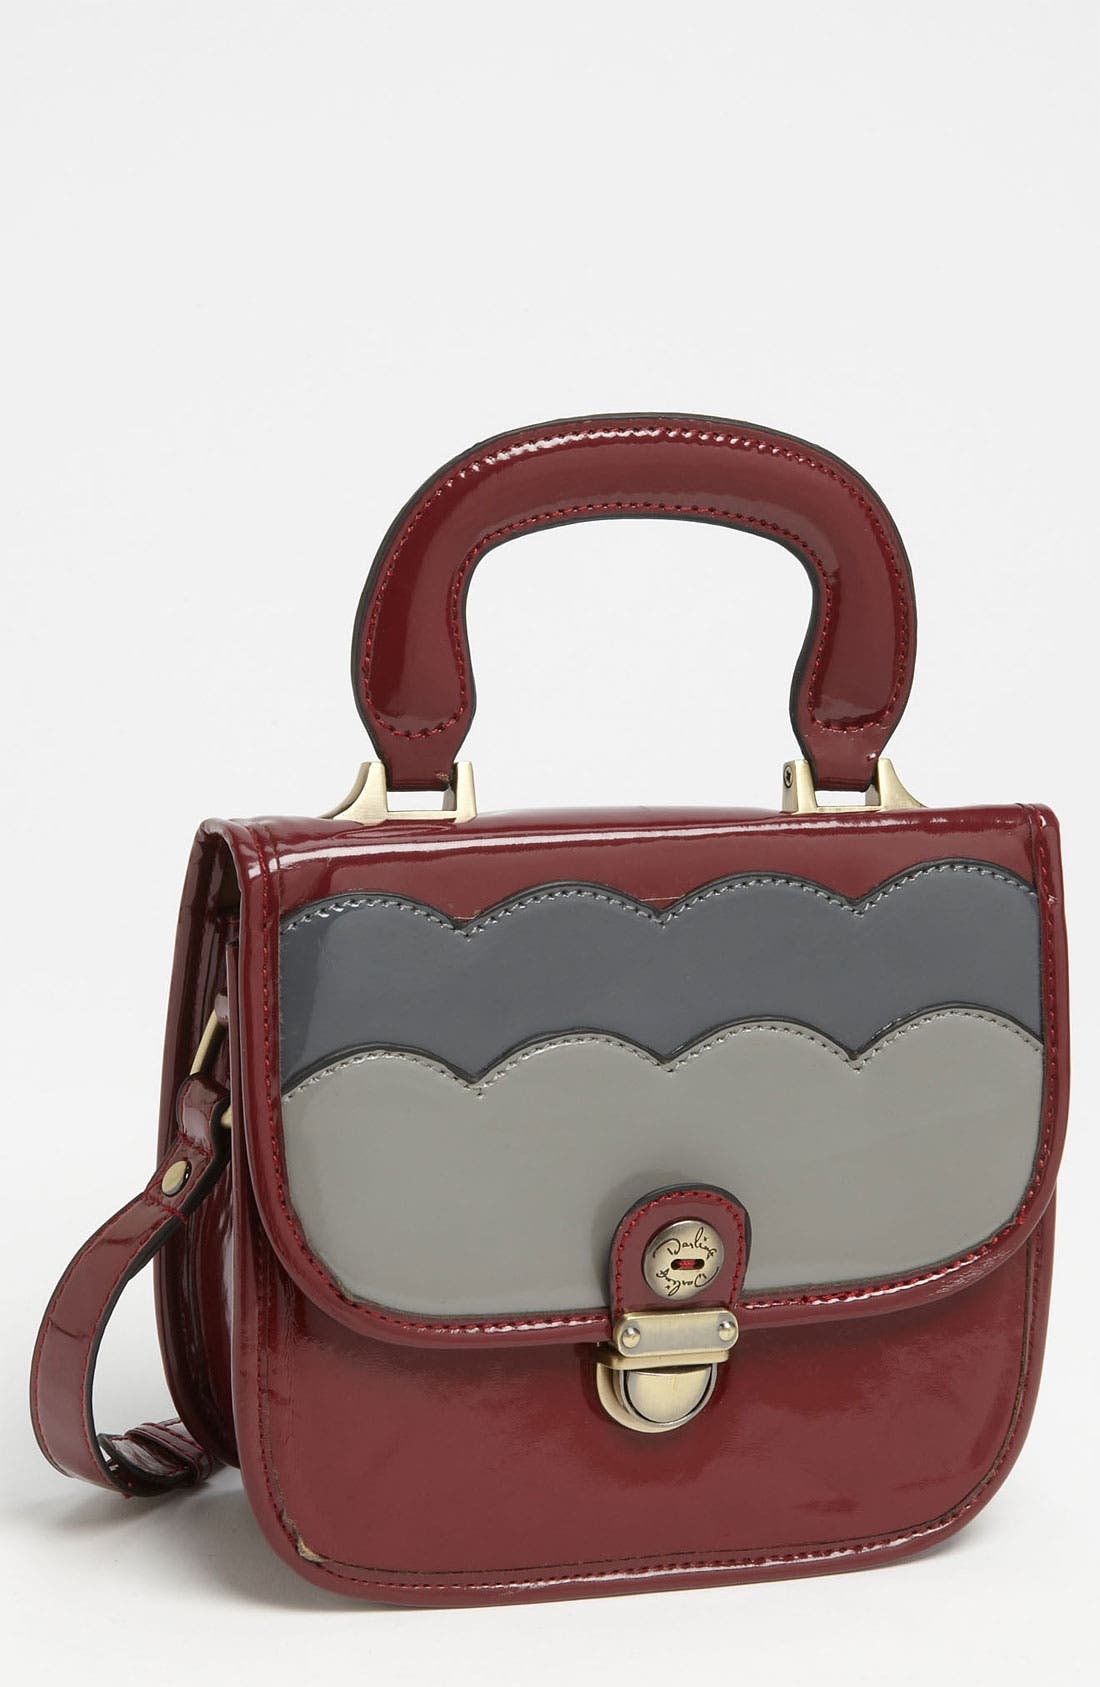 Main Image - Darling 'Whitney' Top Handle Crossbody Satchel